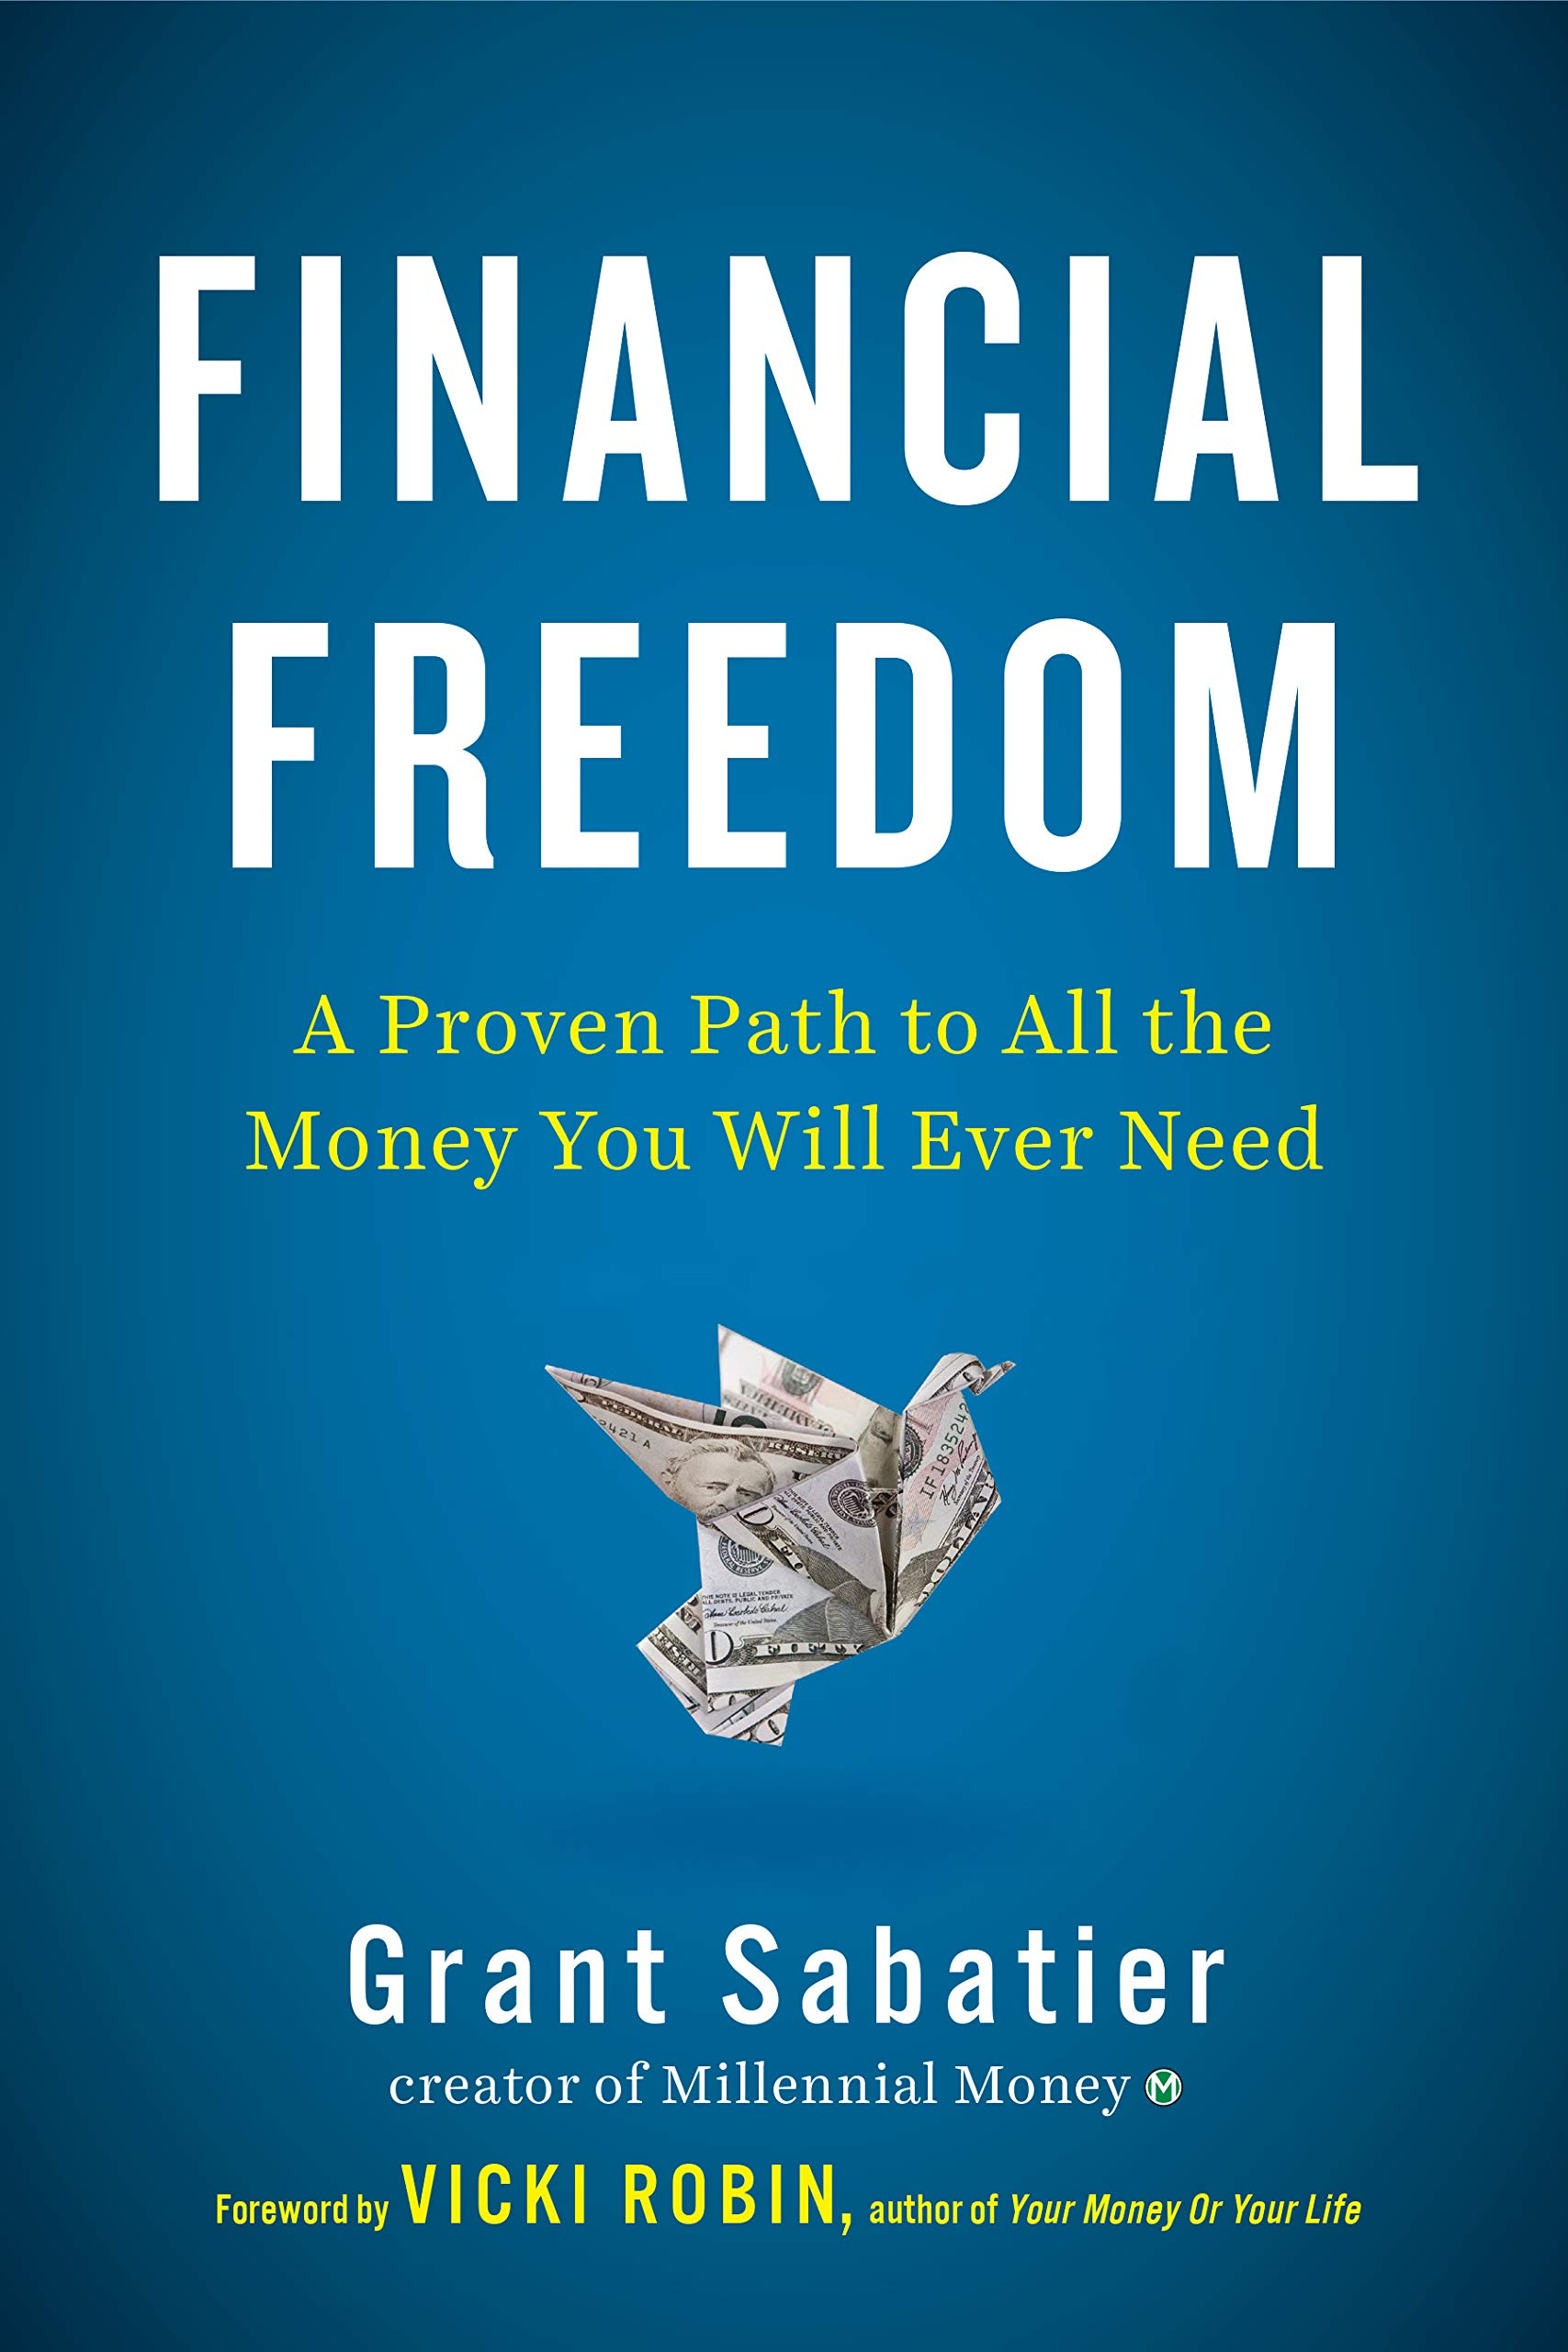 financial freedom grant sabatier的圖片搜尋結果